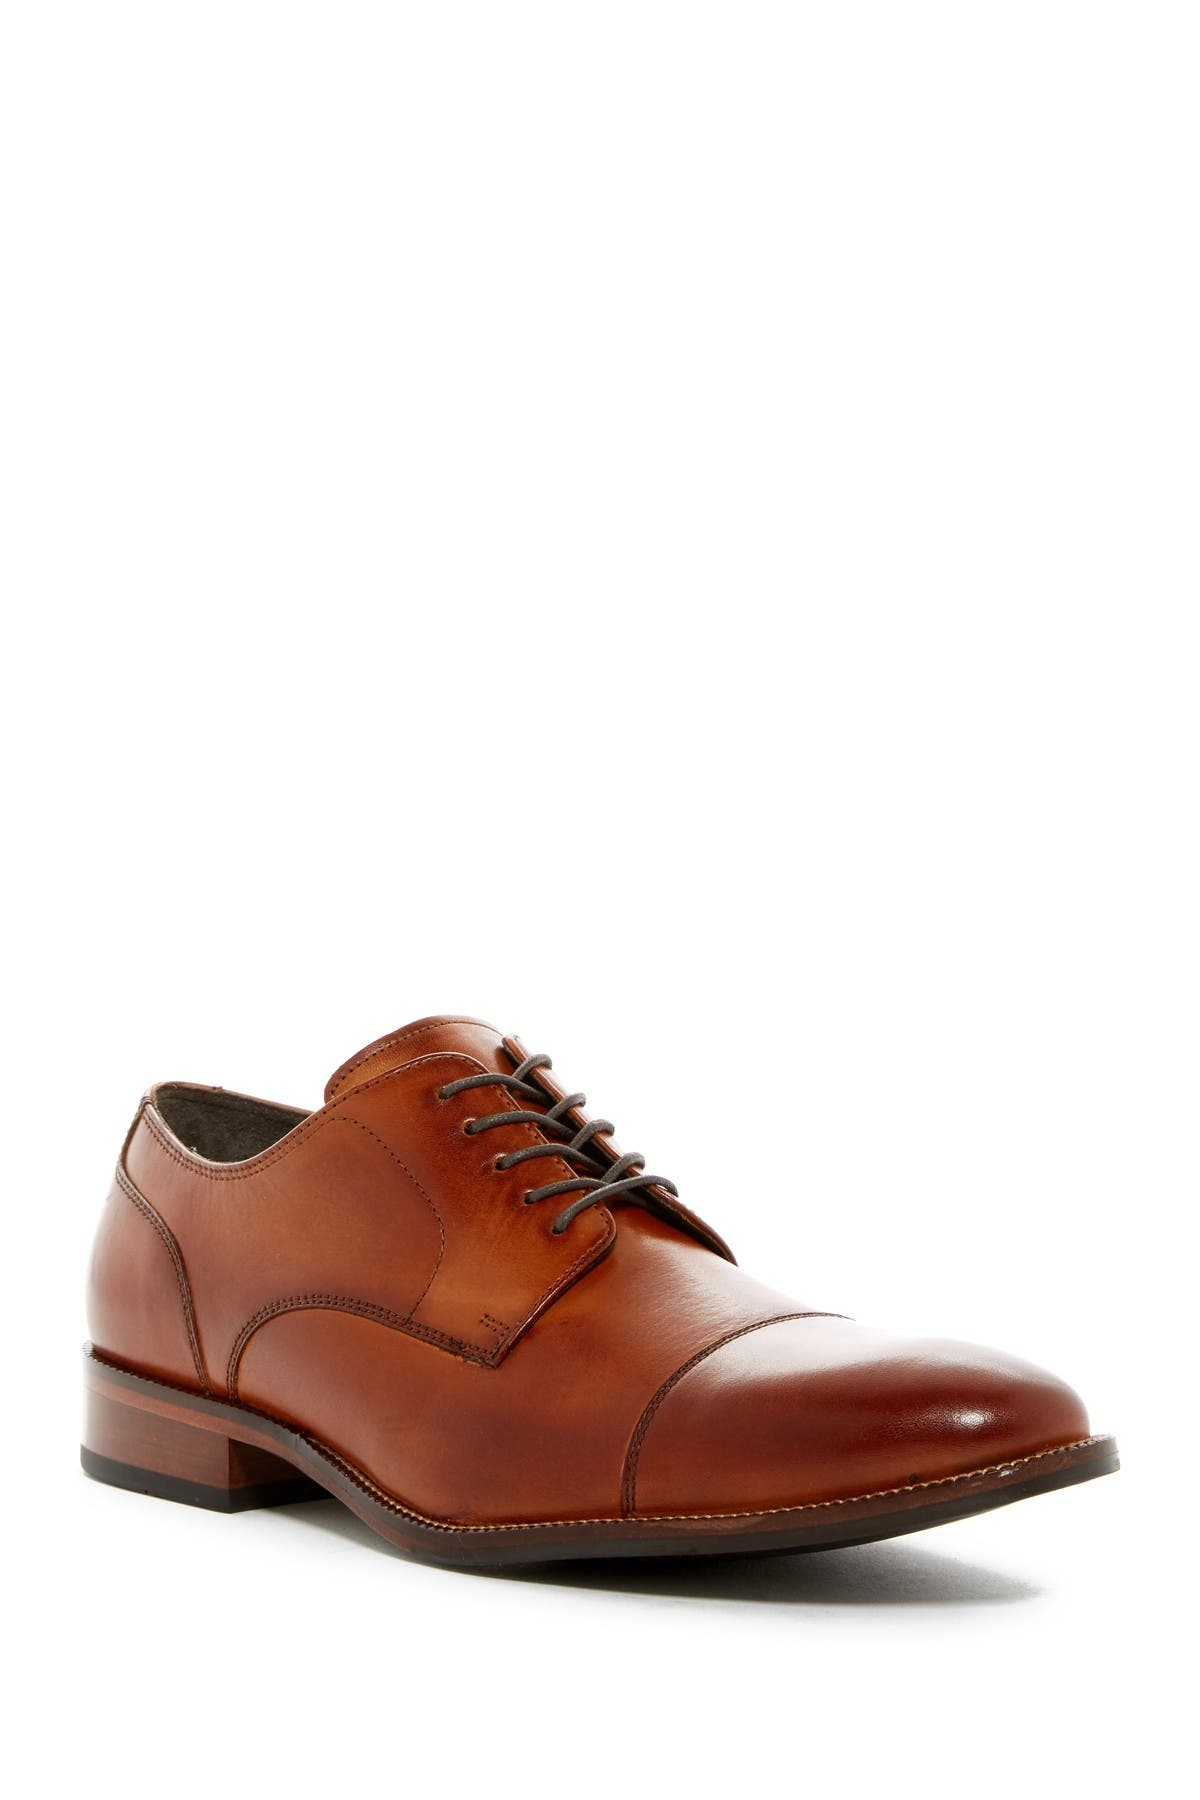 Image of Cole Haan Benton Leather Cap Toe Derby II - Wide Width Available